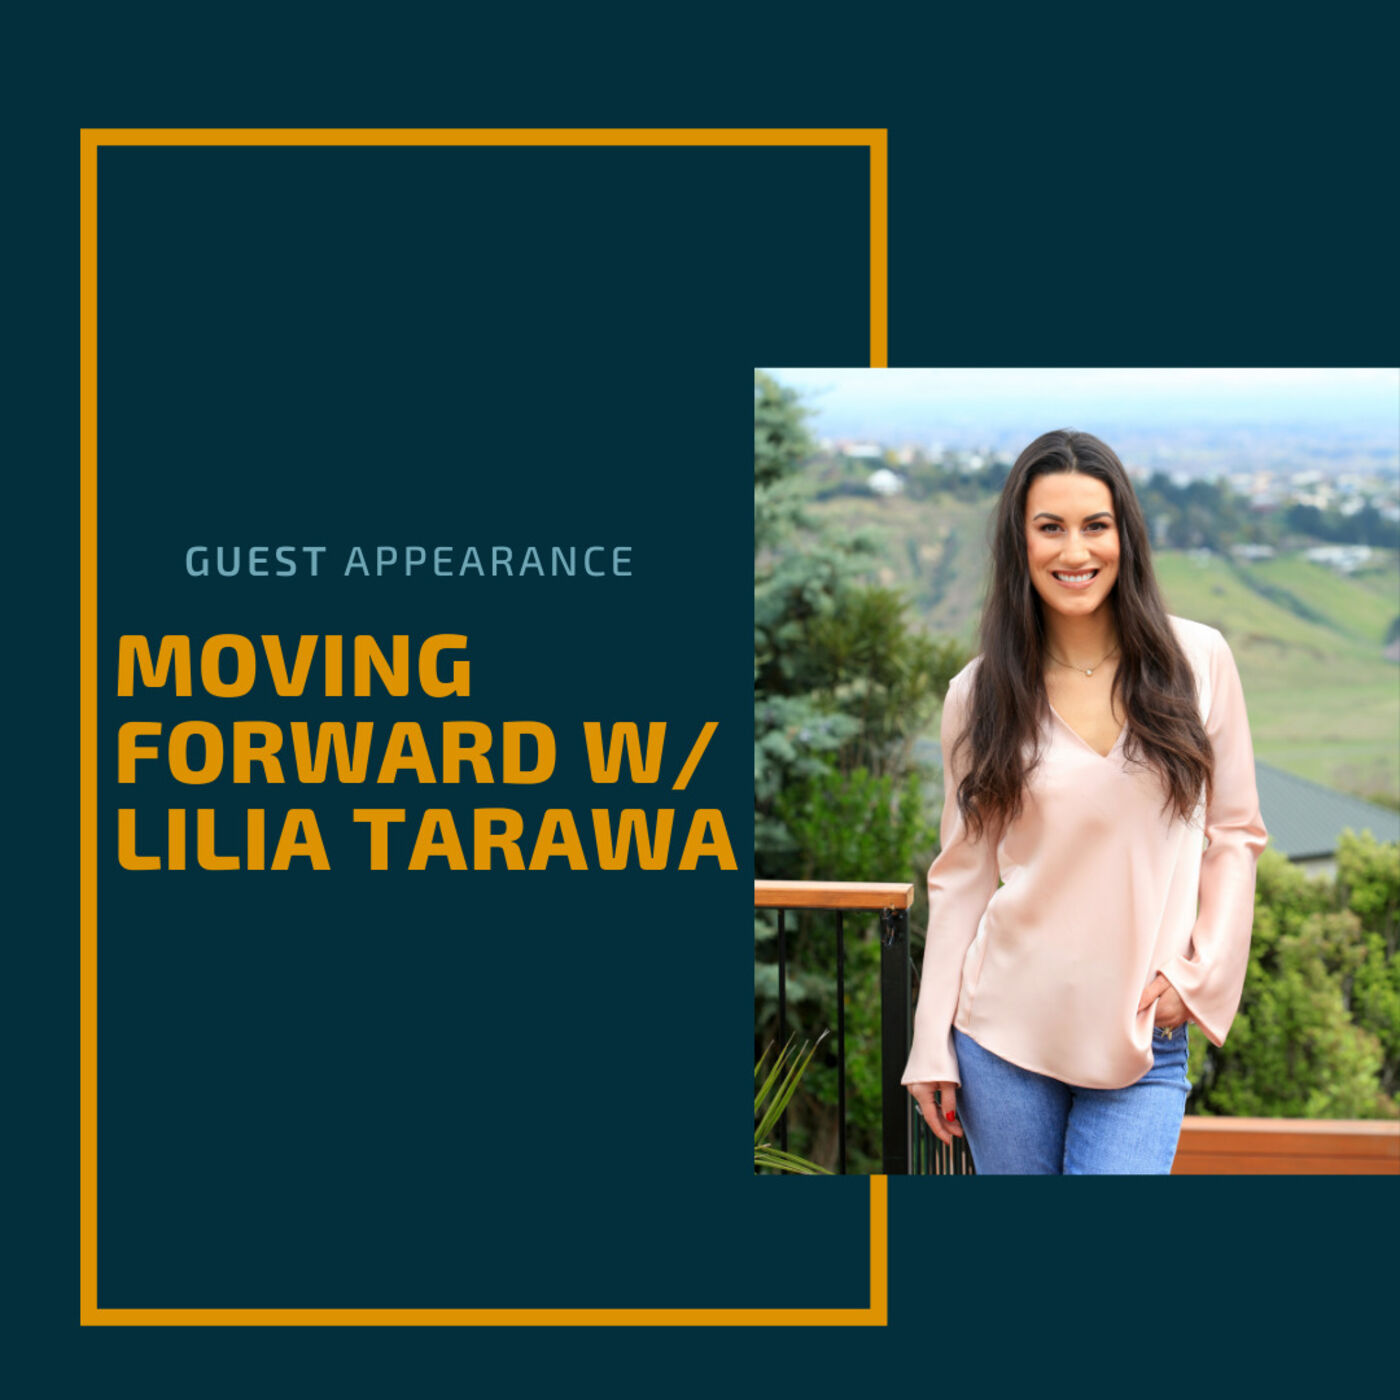 Moving Forward to become a Freedom Seeker w/ Lilia Tarawa